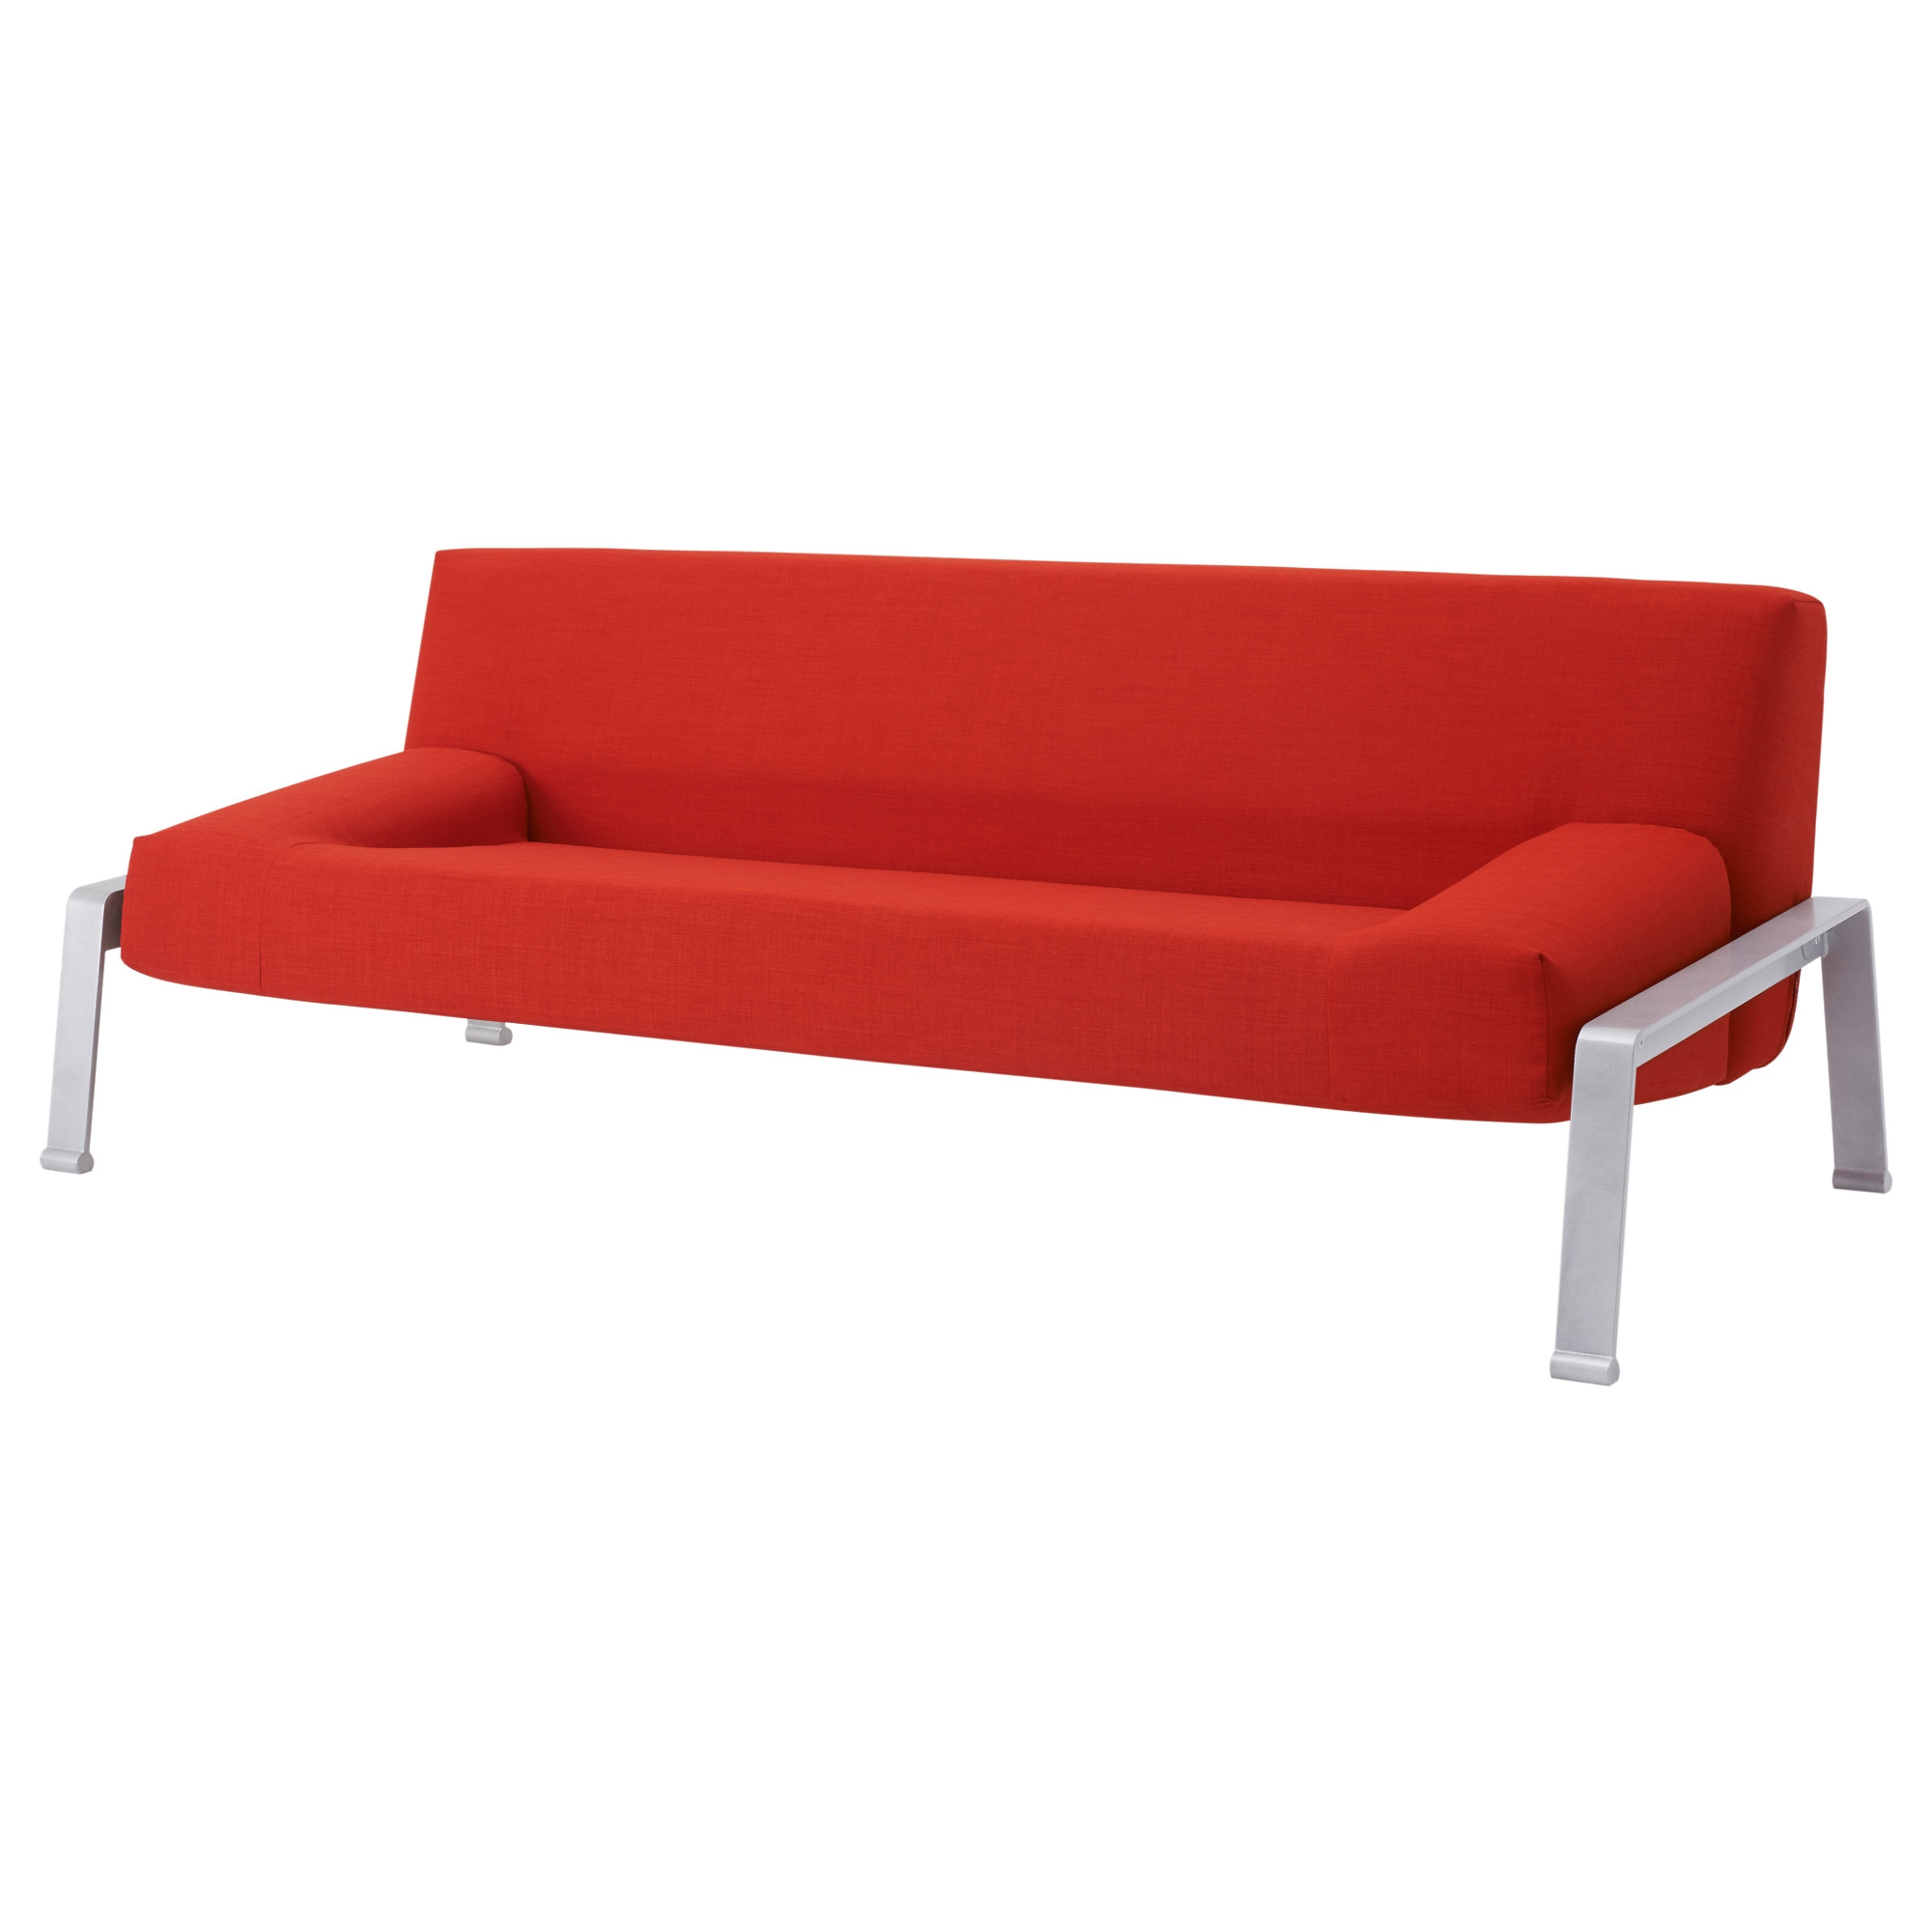 erska sleeper sofa - skiftebo orange - ikea